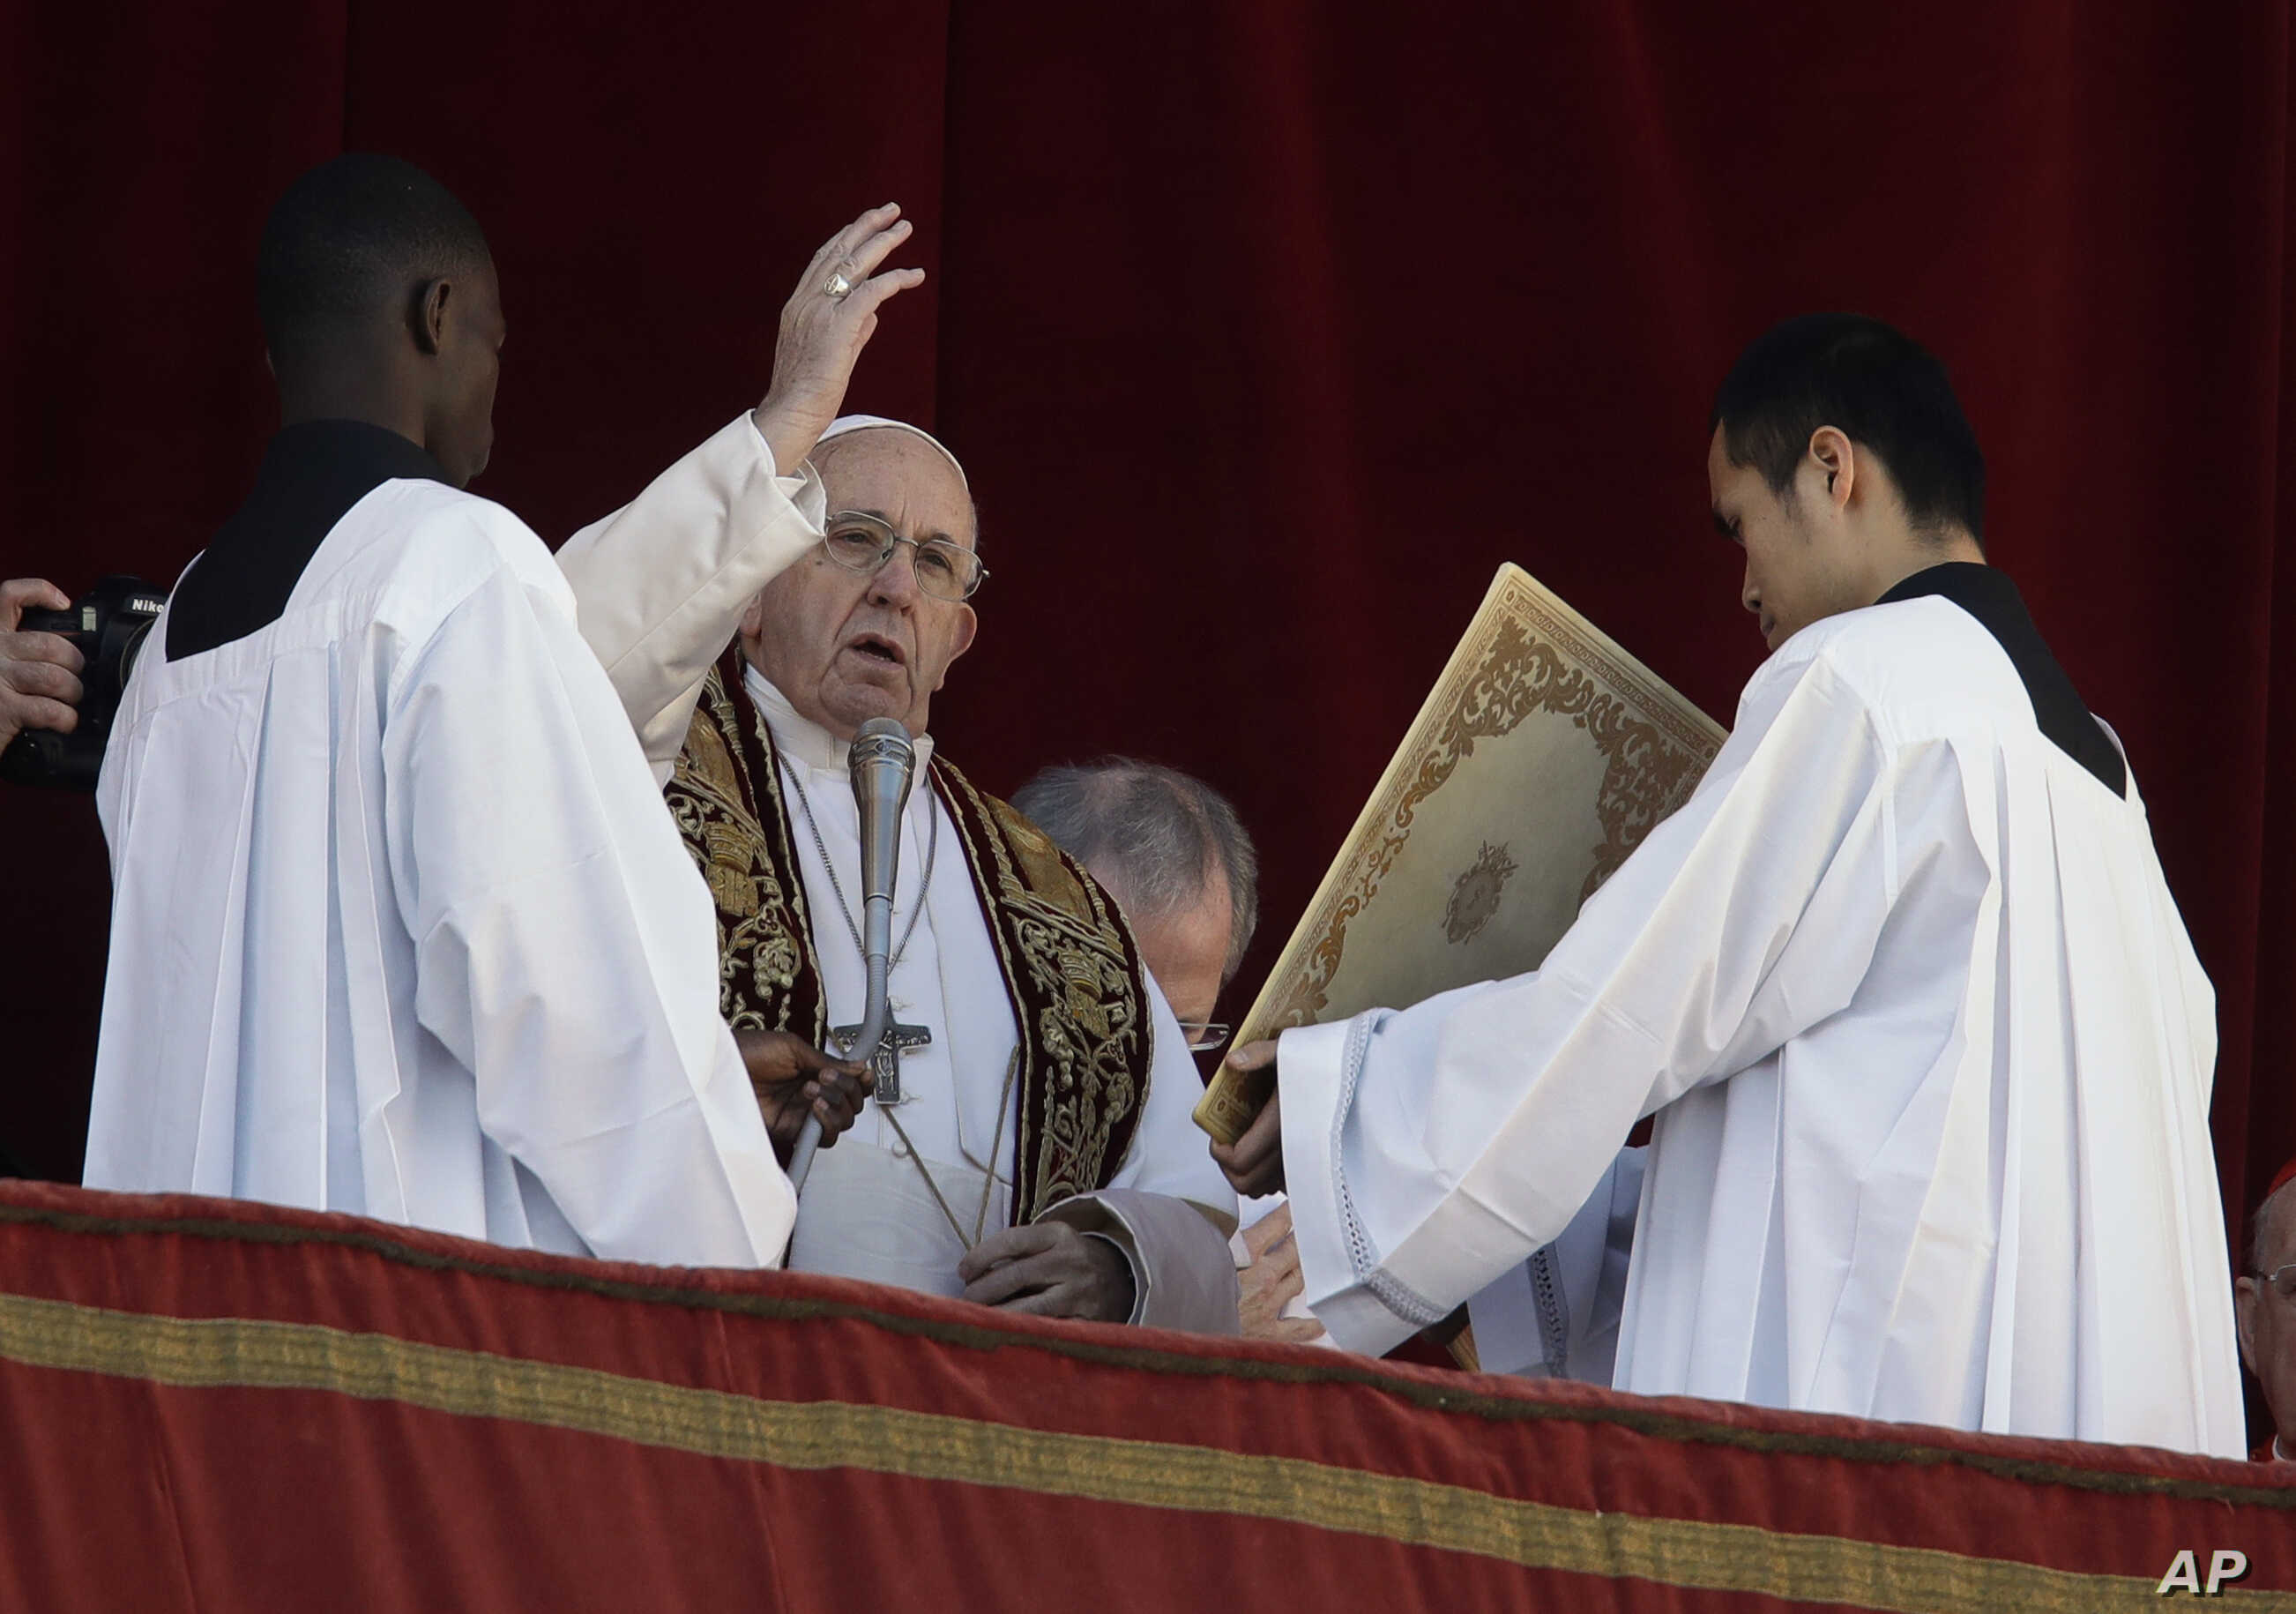 Pope Francis delivers the Urbi et Orbi blessing from the main balcony of St. Peter's Basilica at the Vatican, Dec. 25, 2018.